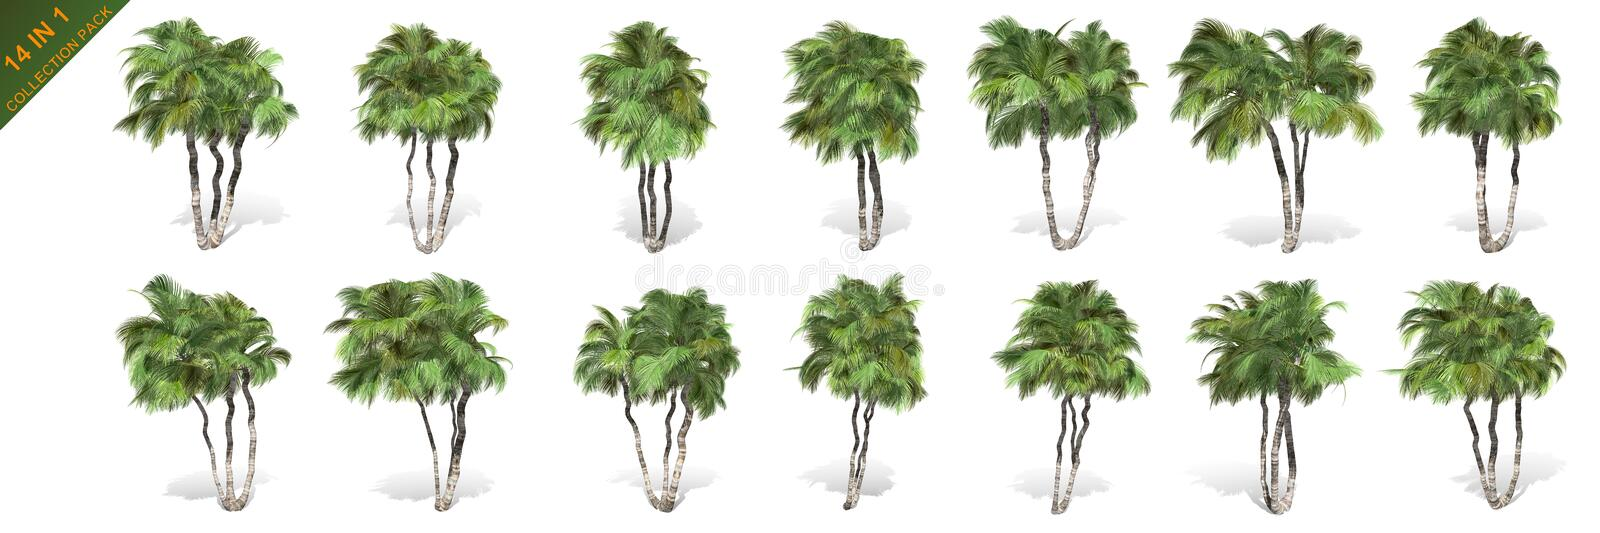 3D rendering - 14 in 1 collection of tall coconut trees isolated over a white background royalty free illustration